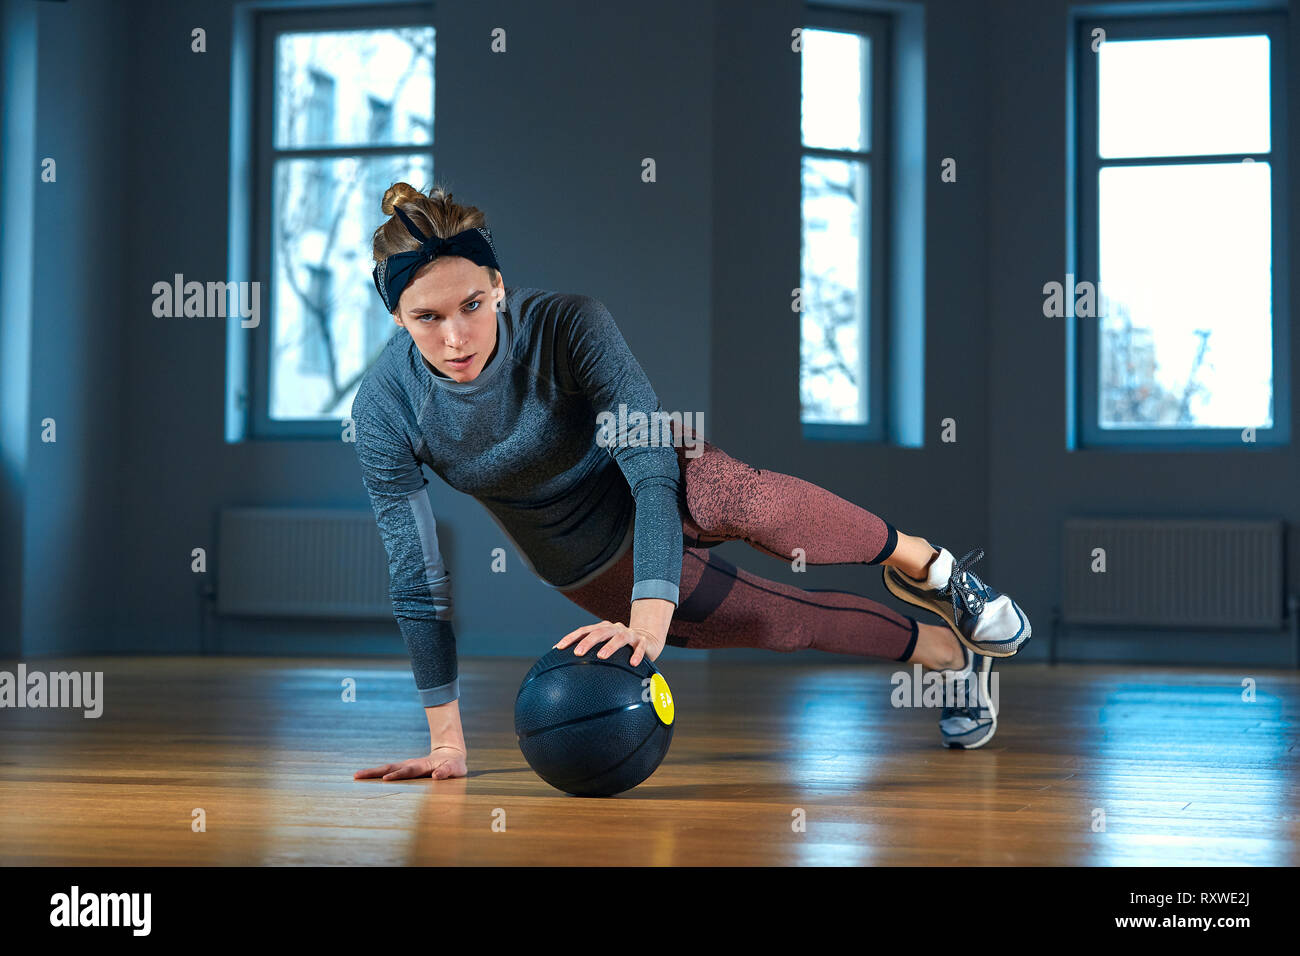 Fit and muscular woman doing intense core workout with kettlebell in gym. Female exercising at crossfit gym. Stock Photo